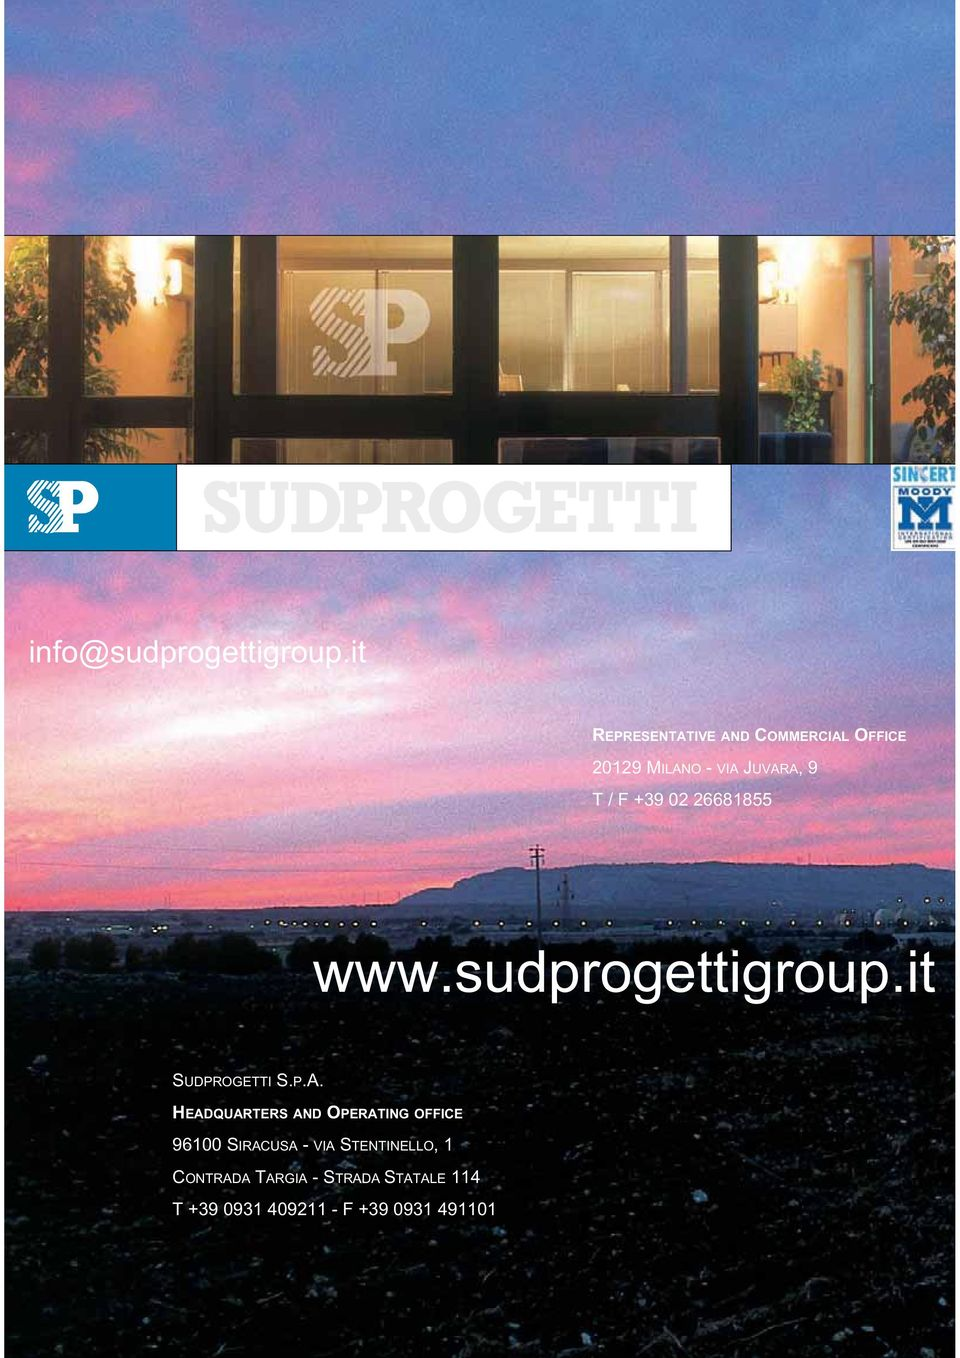 +39 02 26681855 www.sudprogettigroup.it SUDPROGETTI S.P.A.